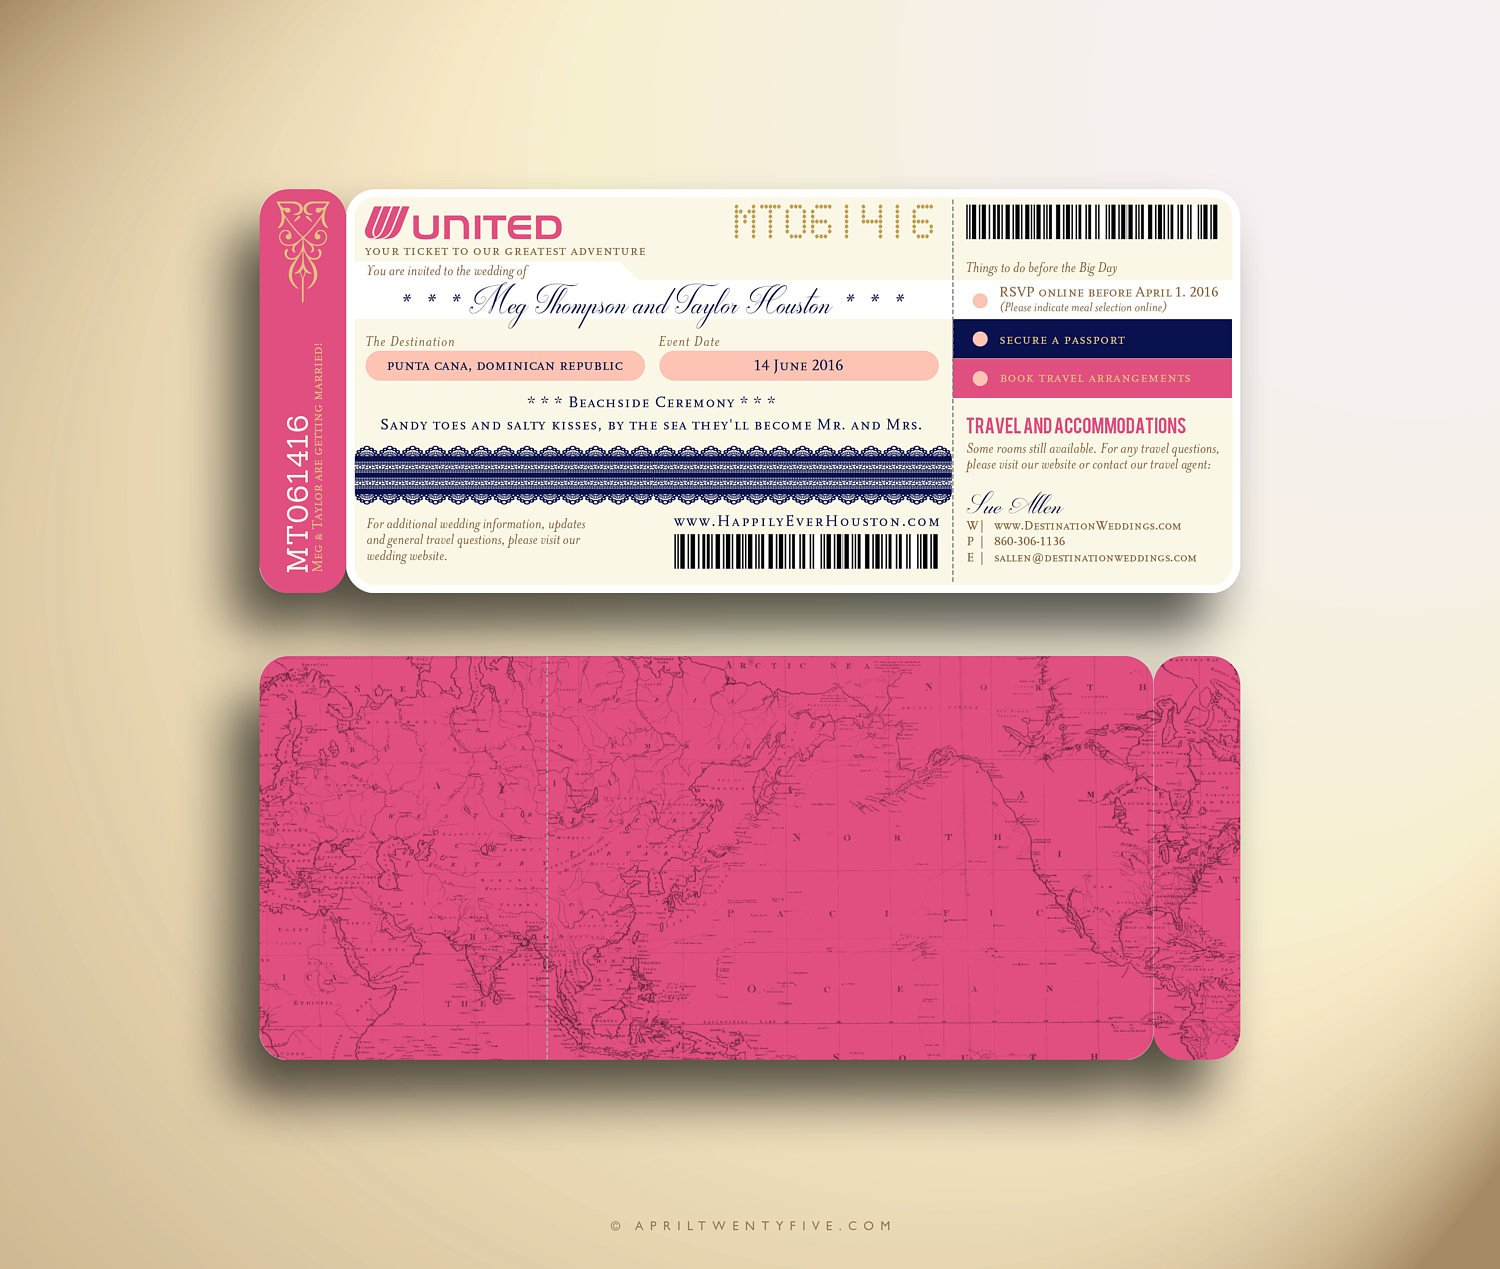 cute wedding ceremony boarding pass ticket example